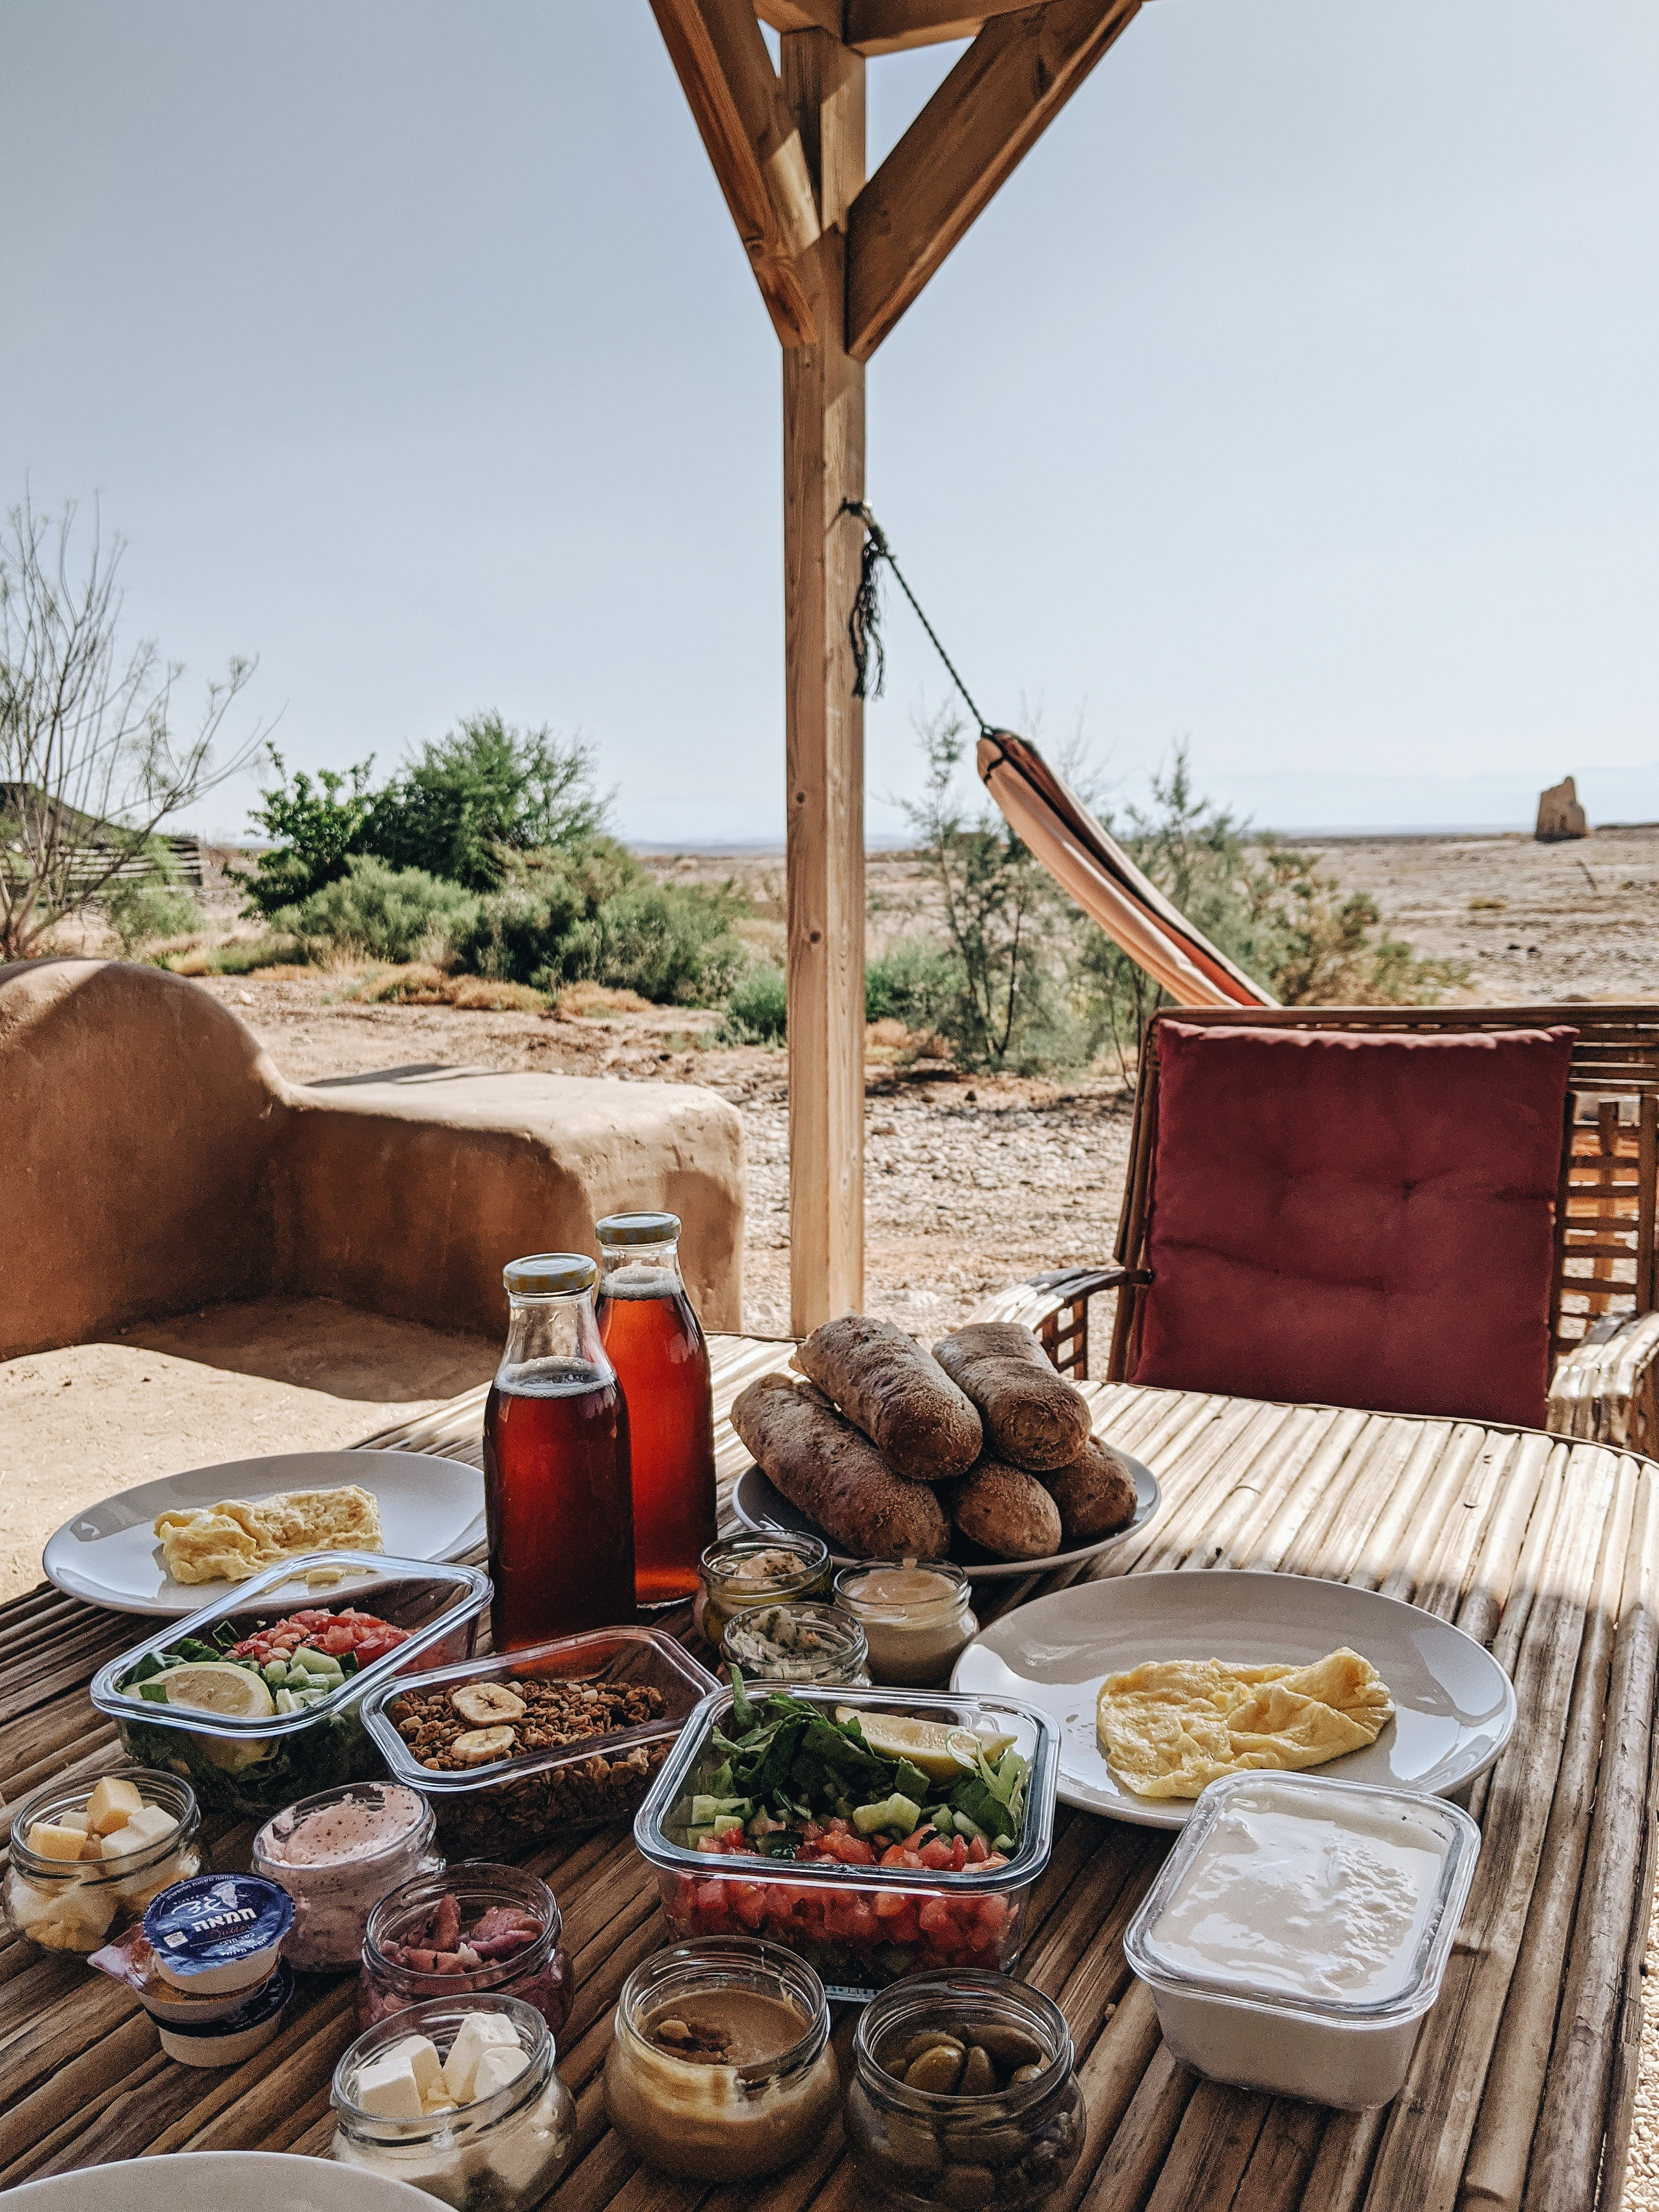 vacation in israel desert breakfast